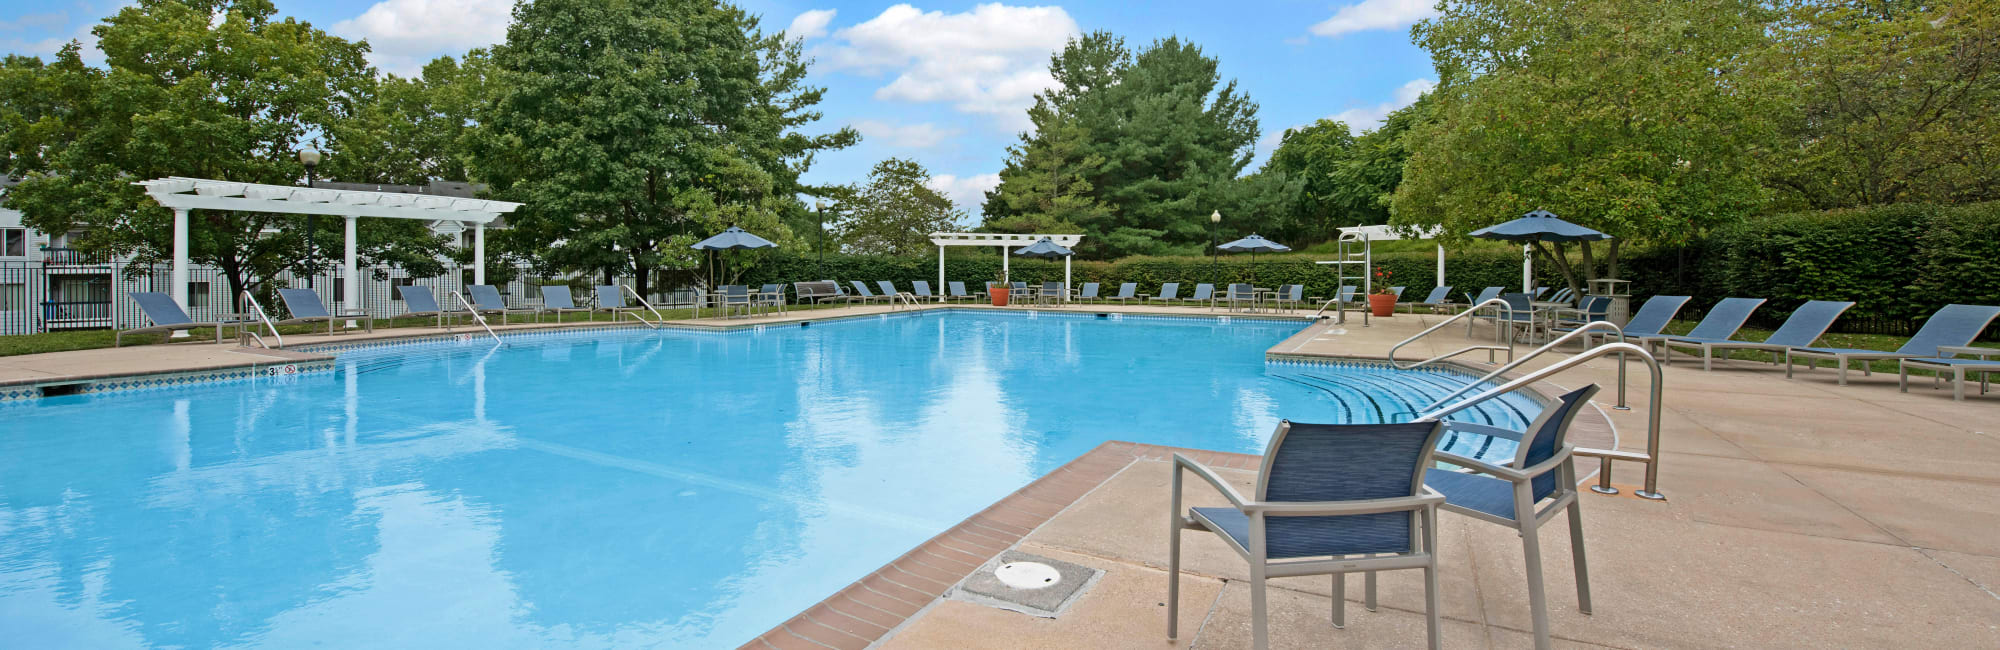 Apartments at Ridgeview at Wakefield Valley in Westminster, Maryland